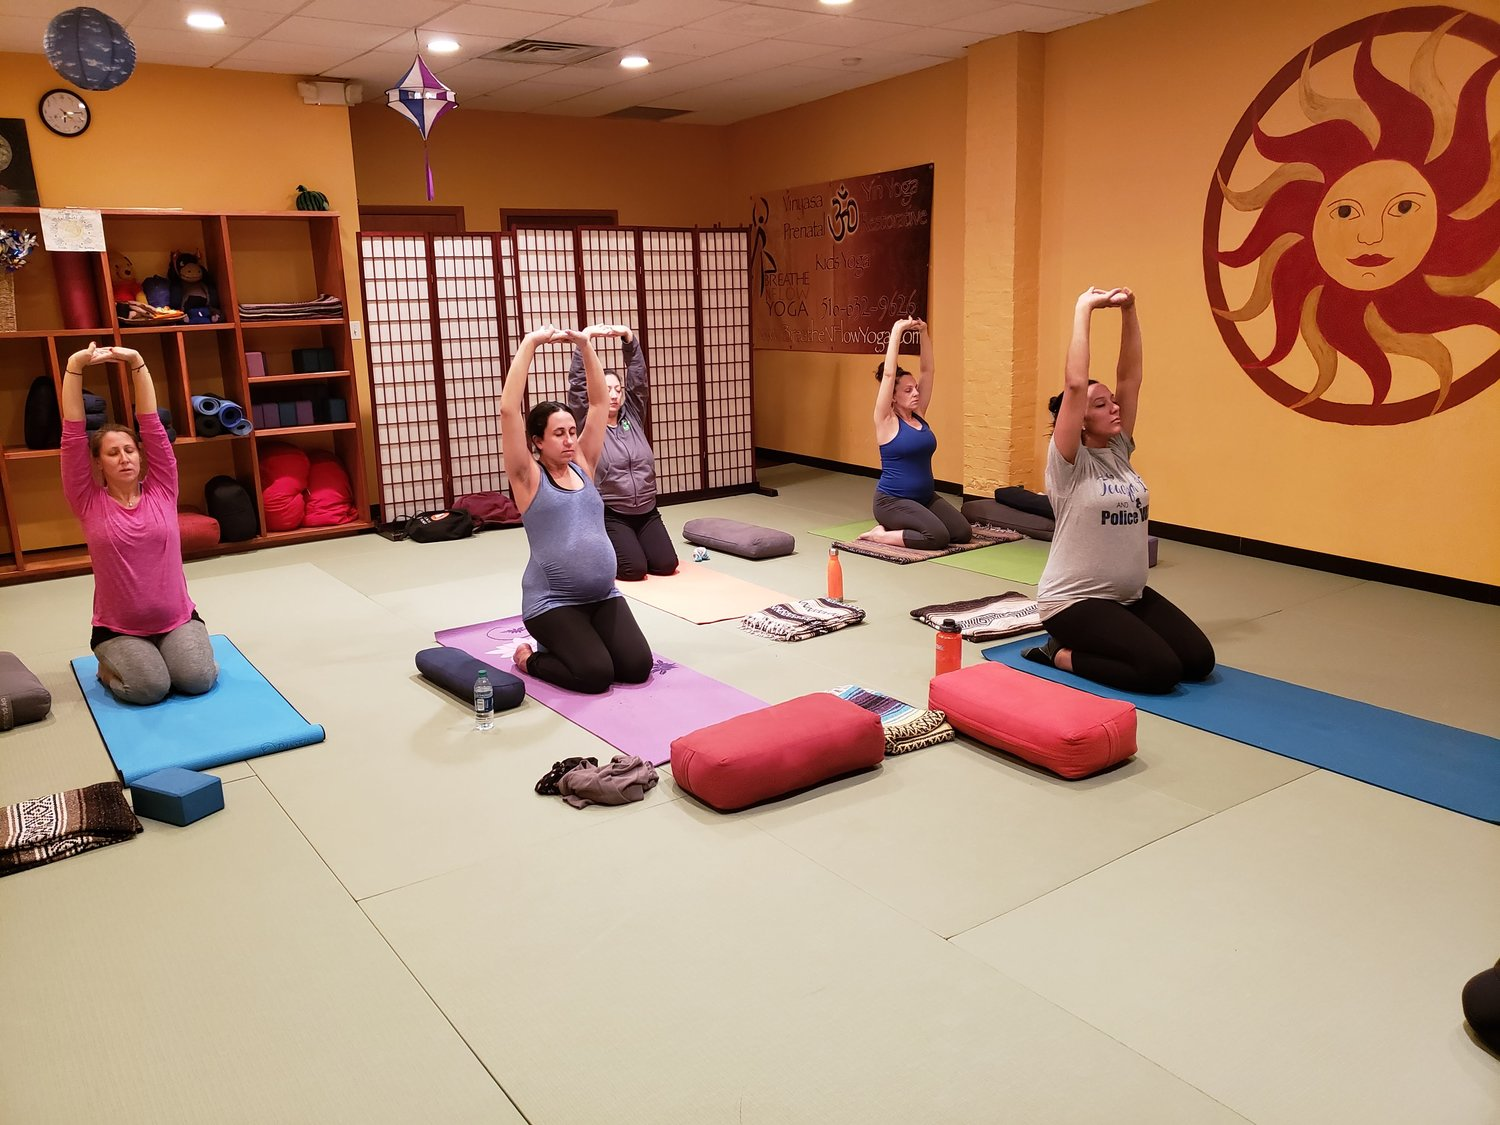 Breathe N Flow prenatal yoga students stretched into a variation of the virasana pose during their weekly class on Jan. 8 in Freeport.